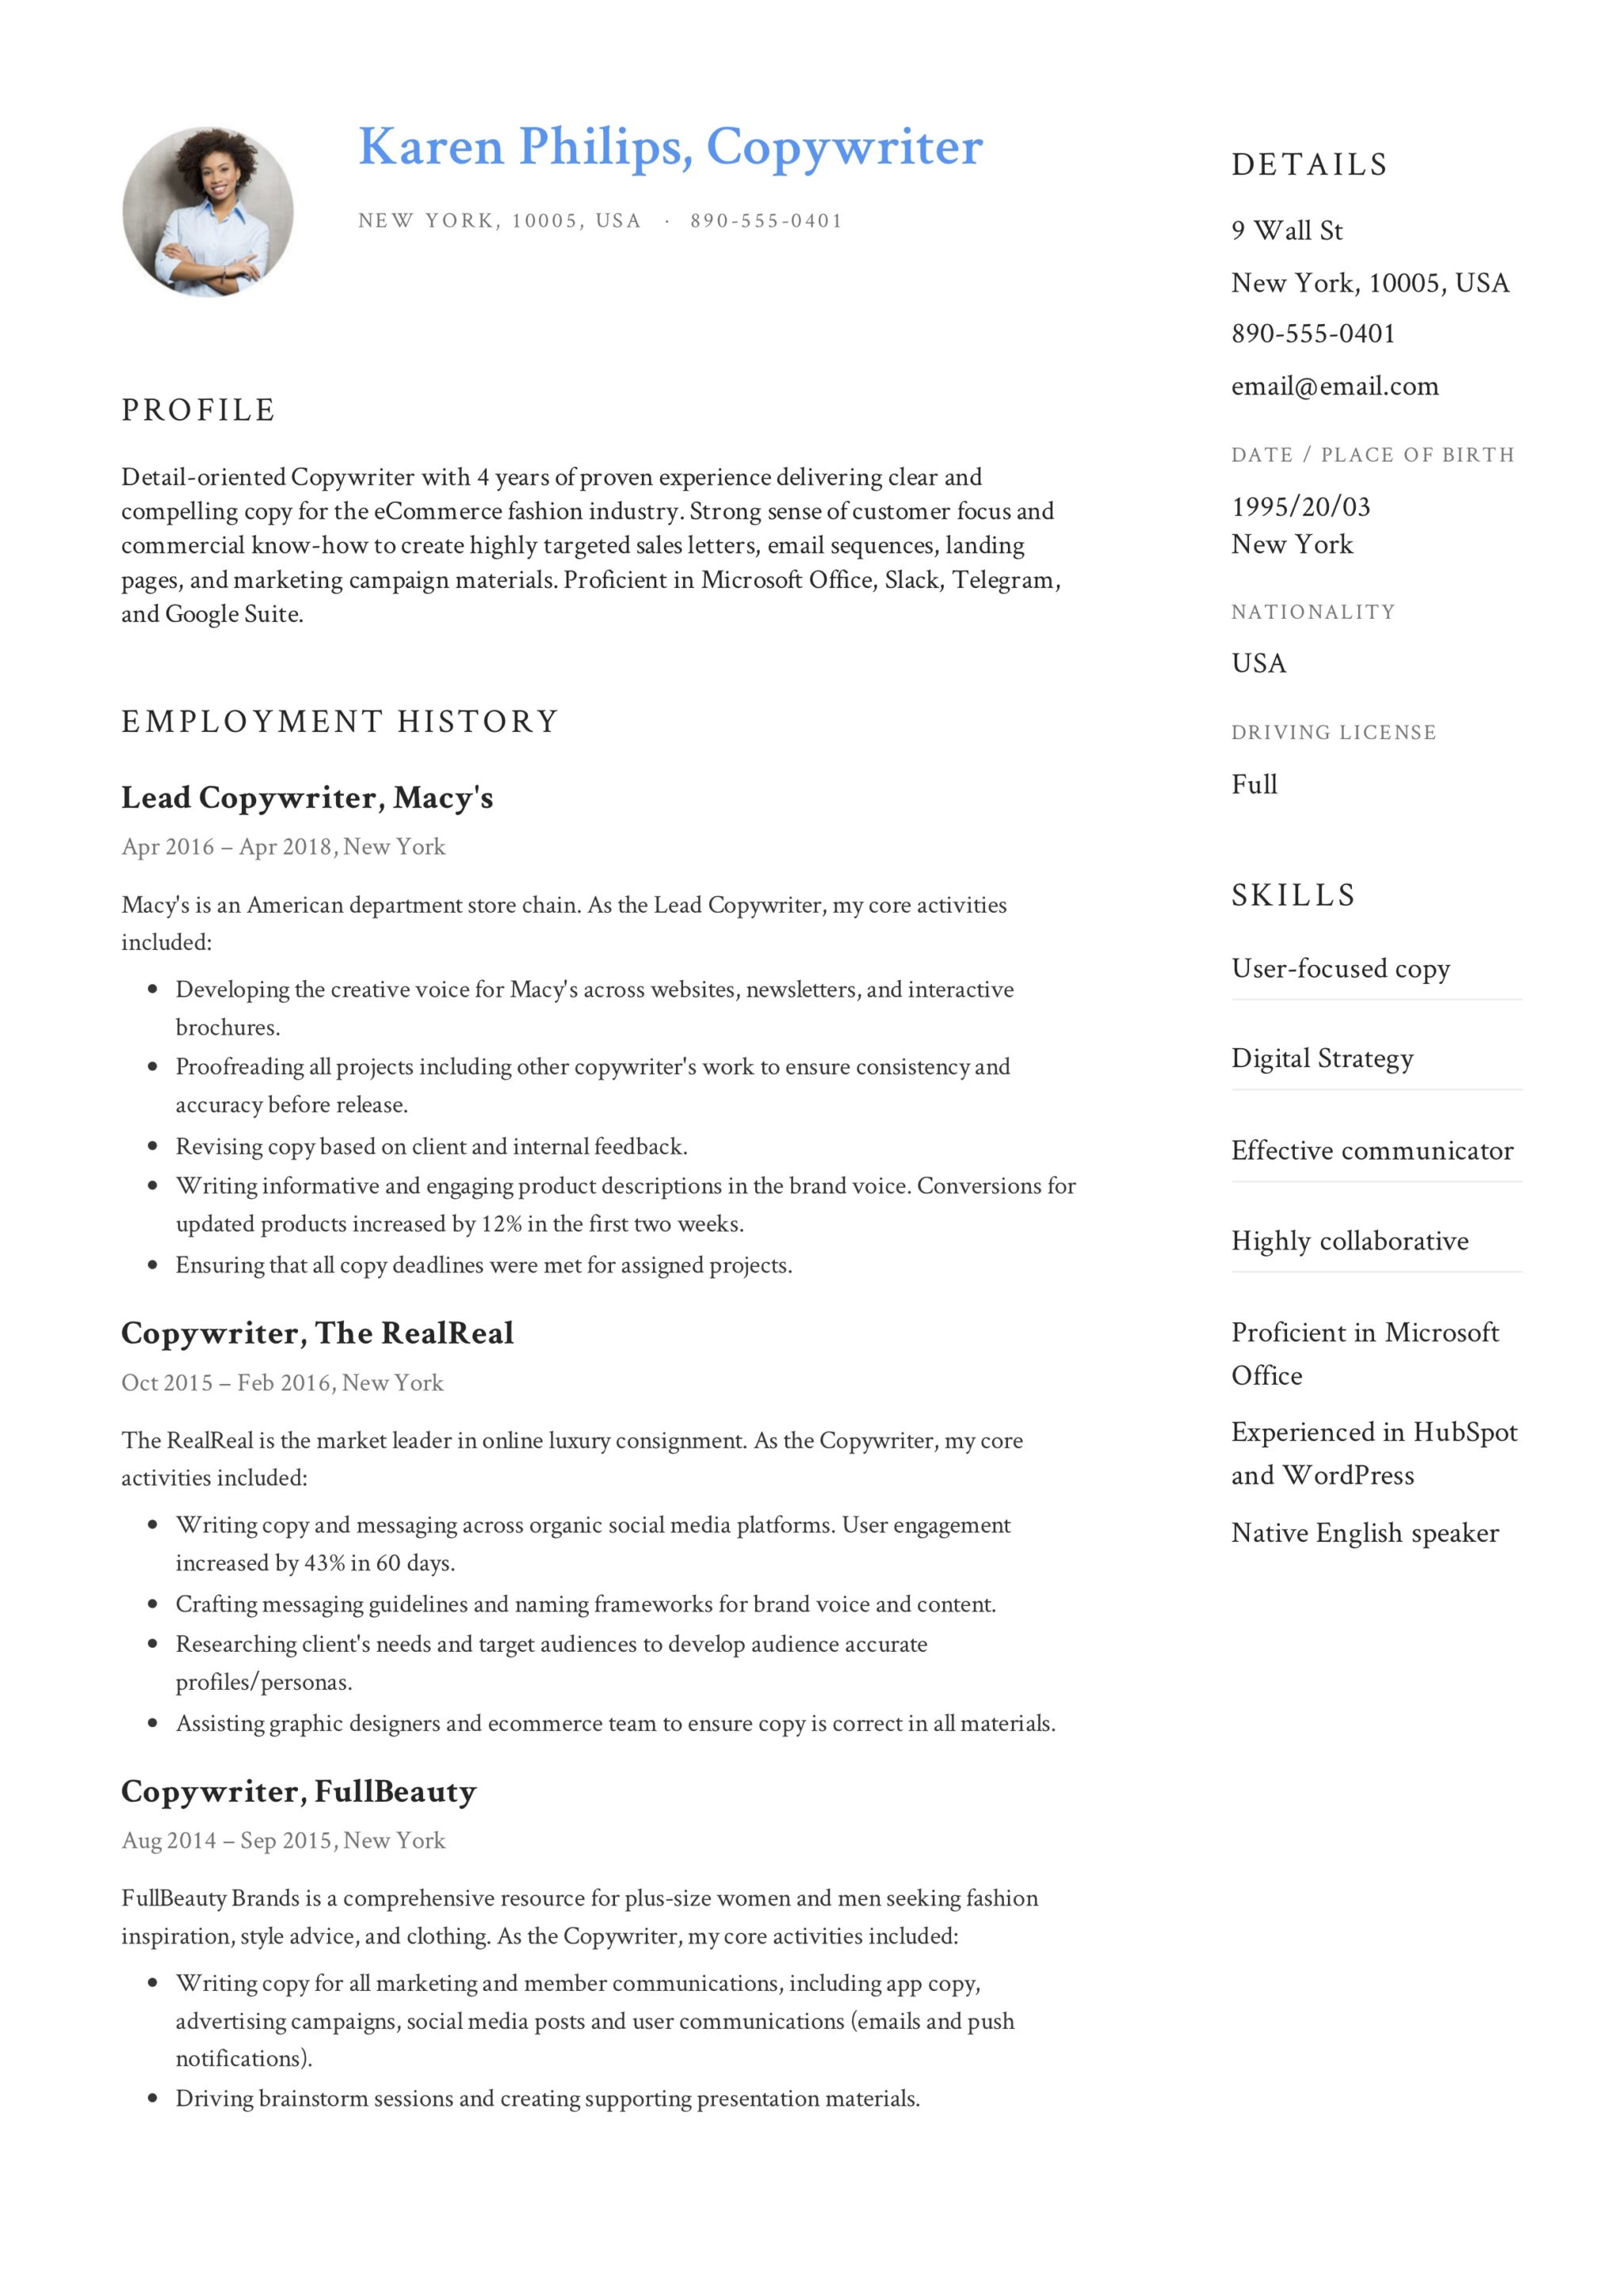 Guide + 12 Different Copywriter Resume Samples | 2019 | PDF |